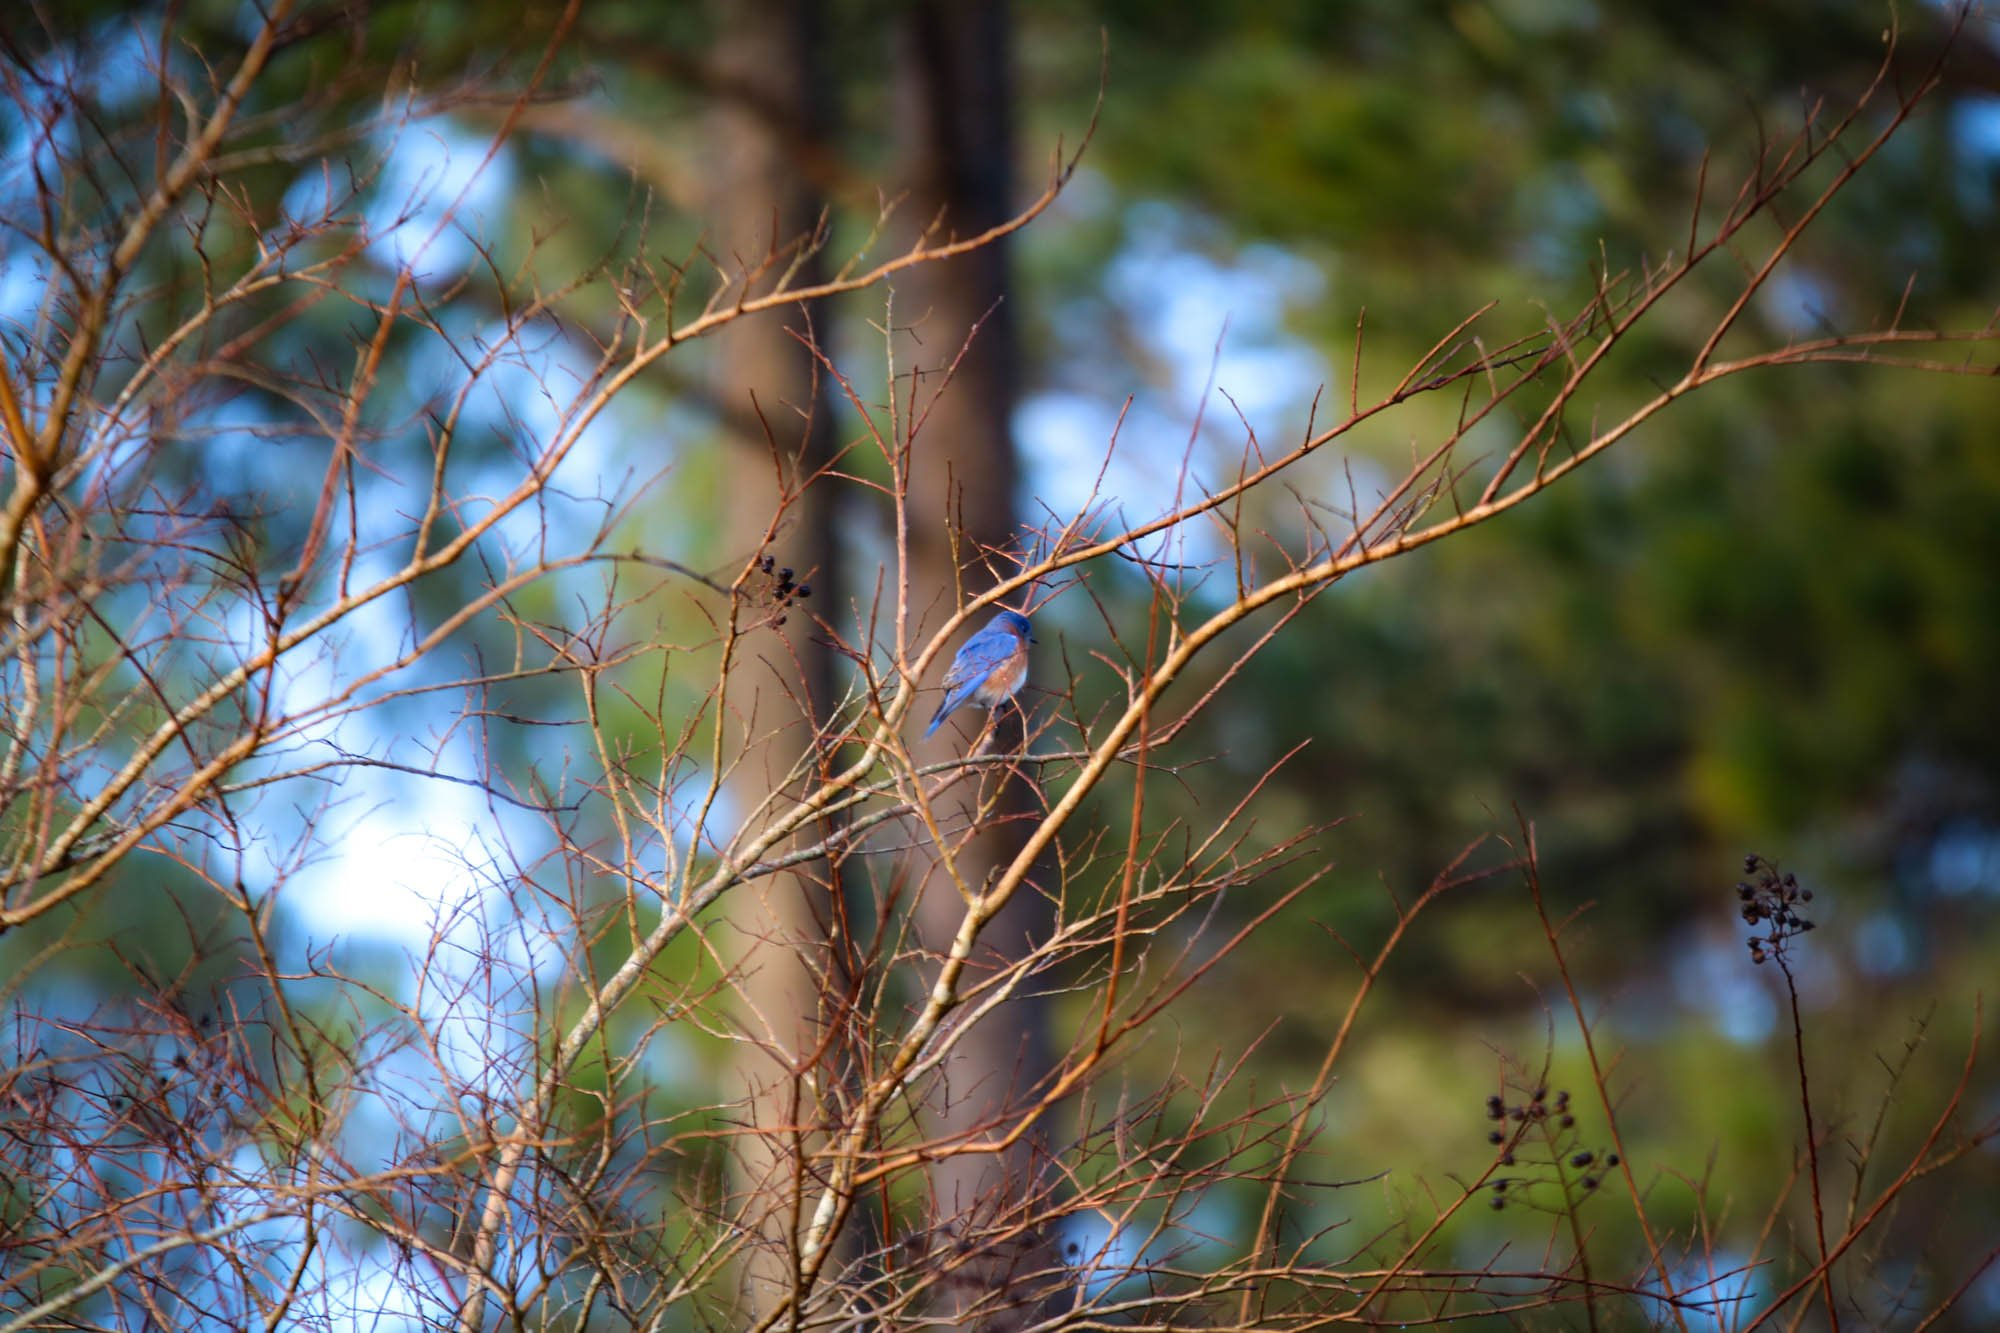 This bluebird is enjoying an elevated perch on an ornamental tree.